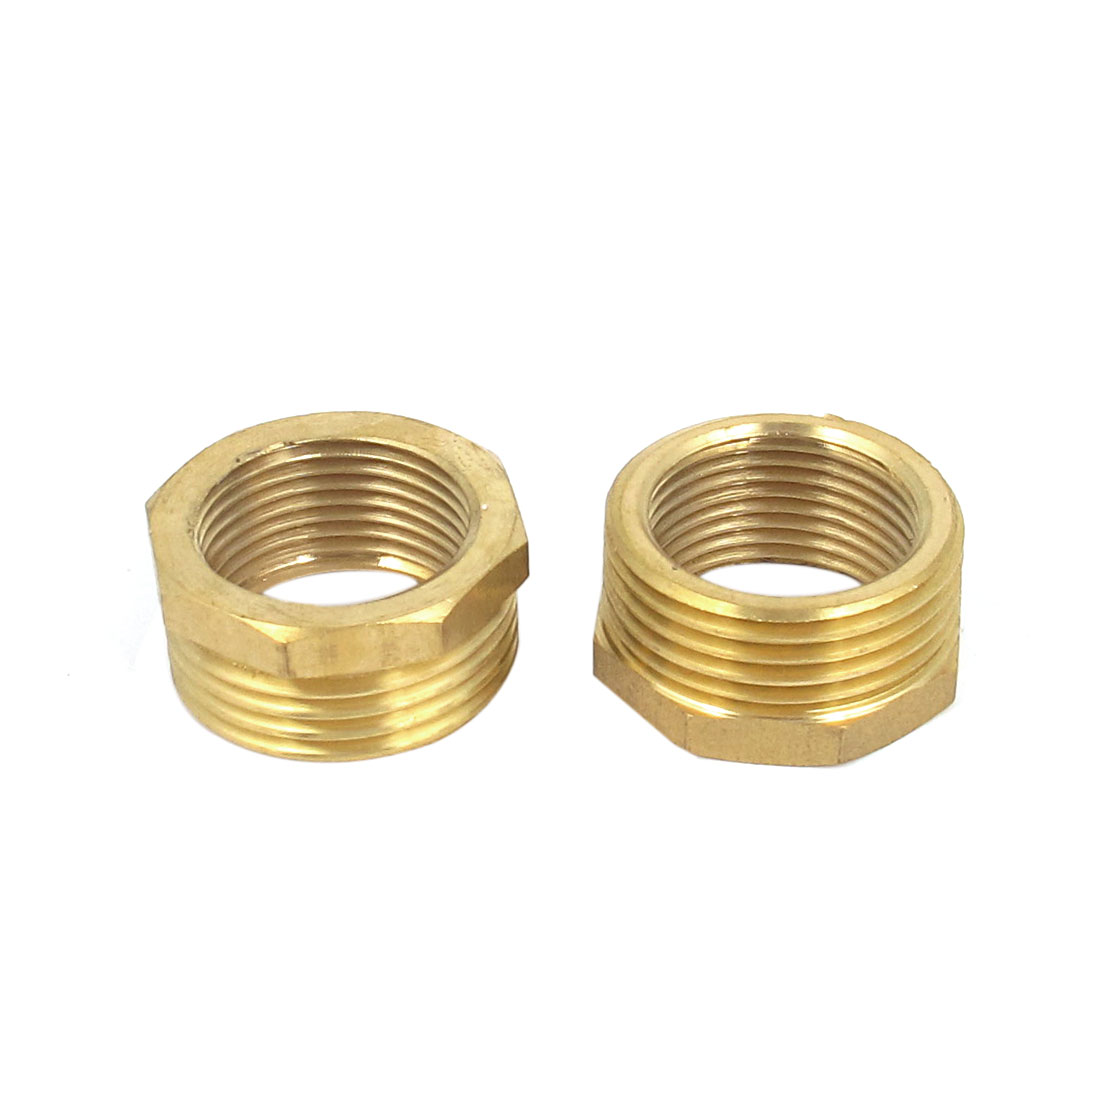 Gold Tone 3/4BSP x 1/2BSP F/M Thread Brass Reducing Bushing Fitting 2pcs